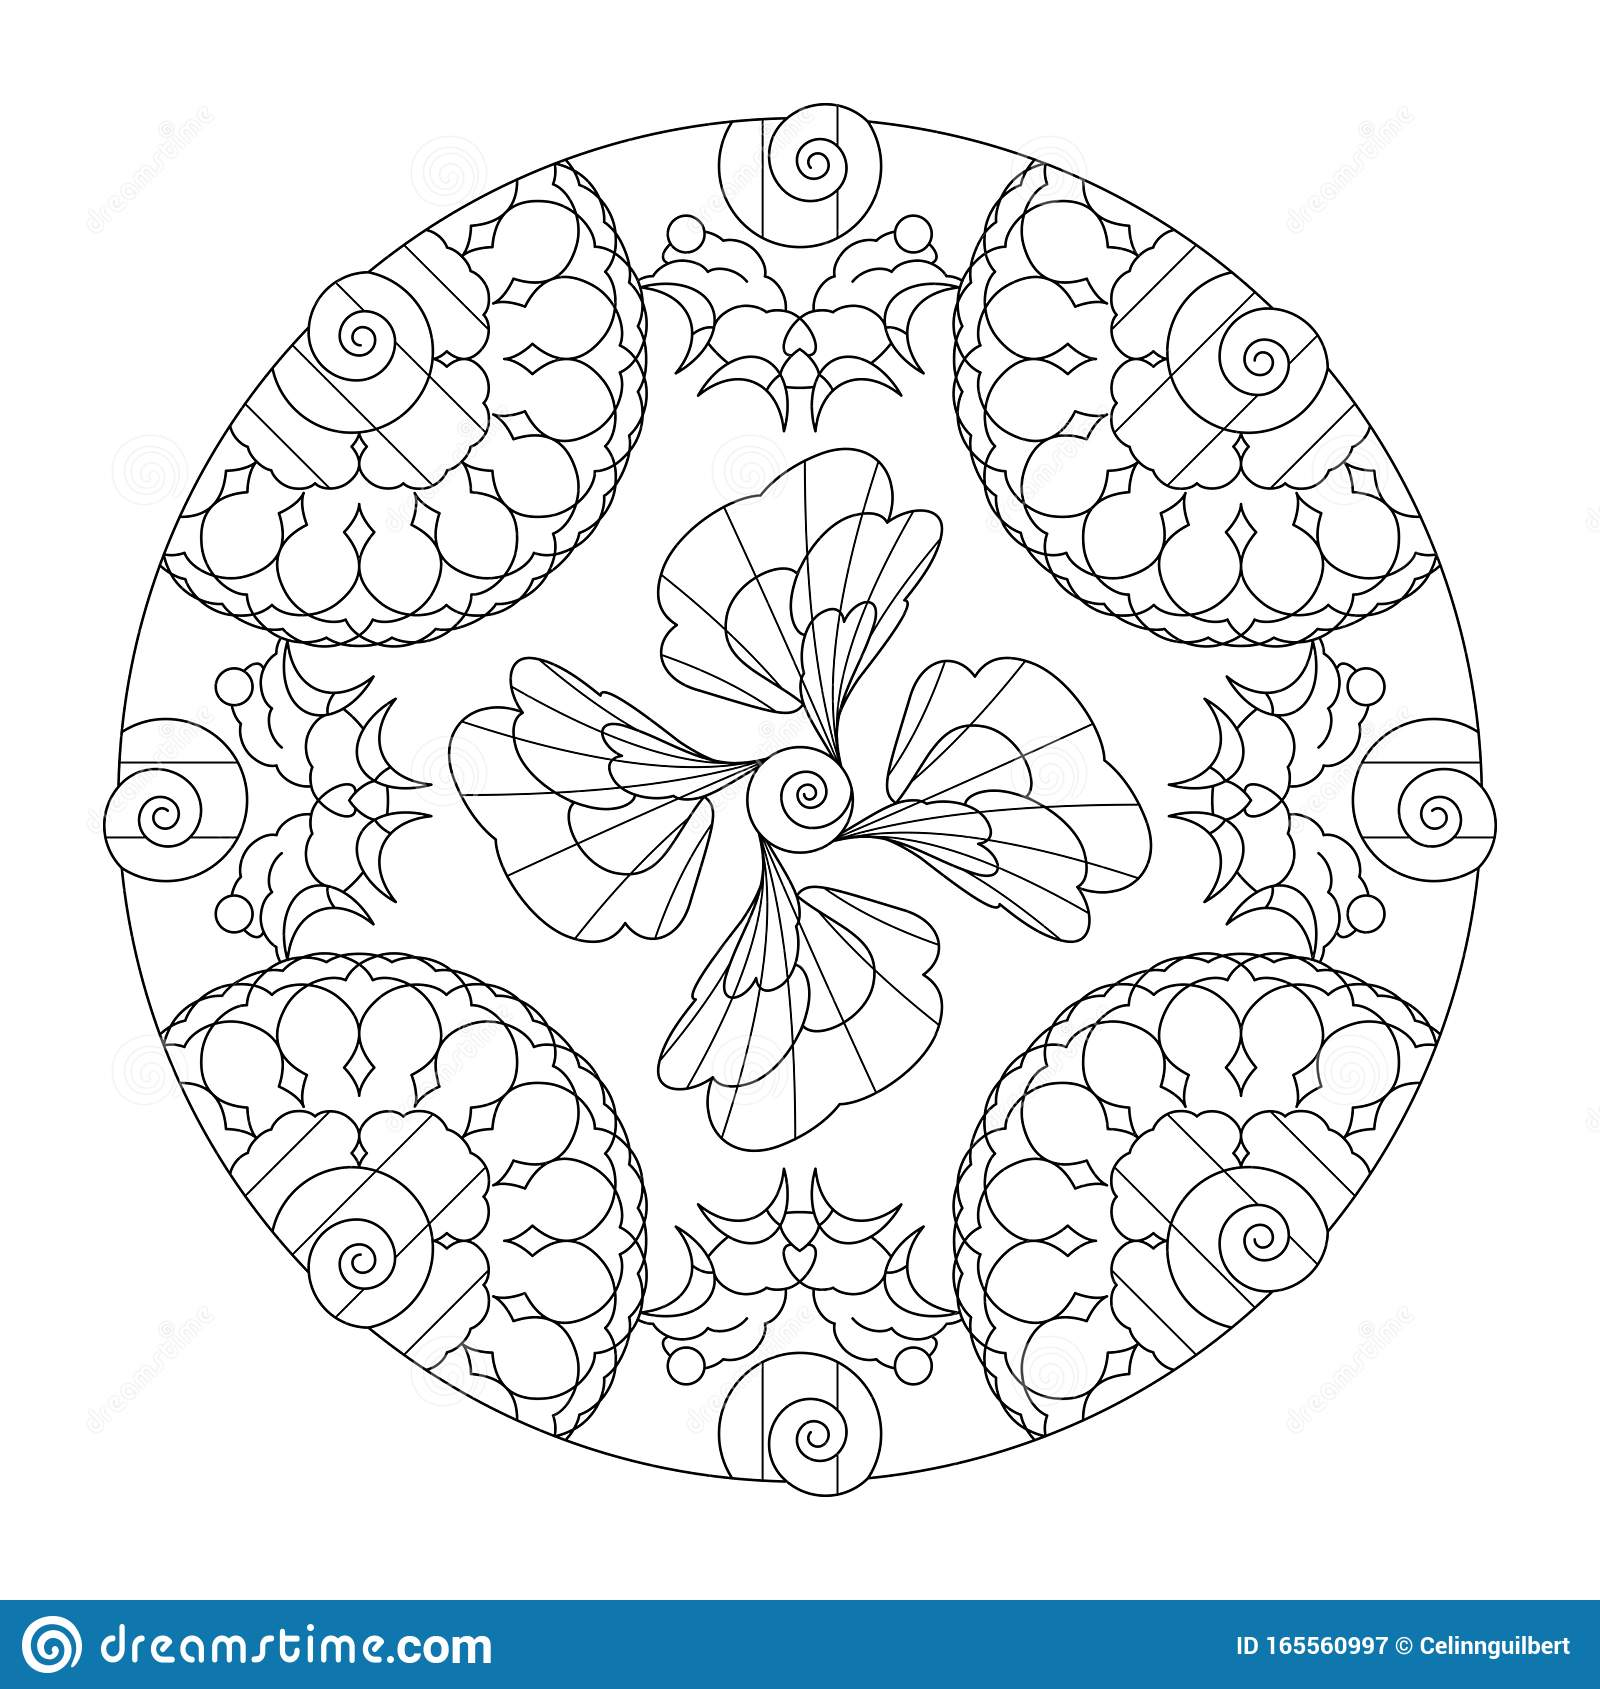 Illustration Mandala Abstract Spirals Art Therapy Coloring Page Decorative Element Stock Vector Illustration Of Love Background 165560997